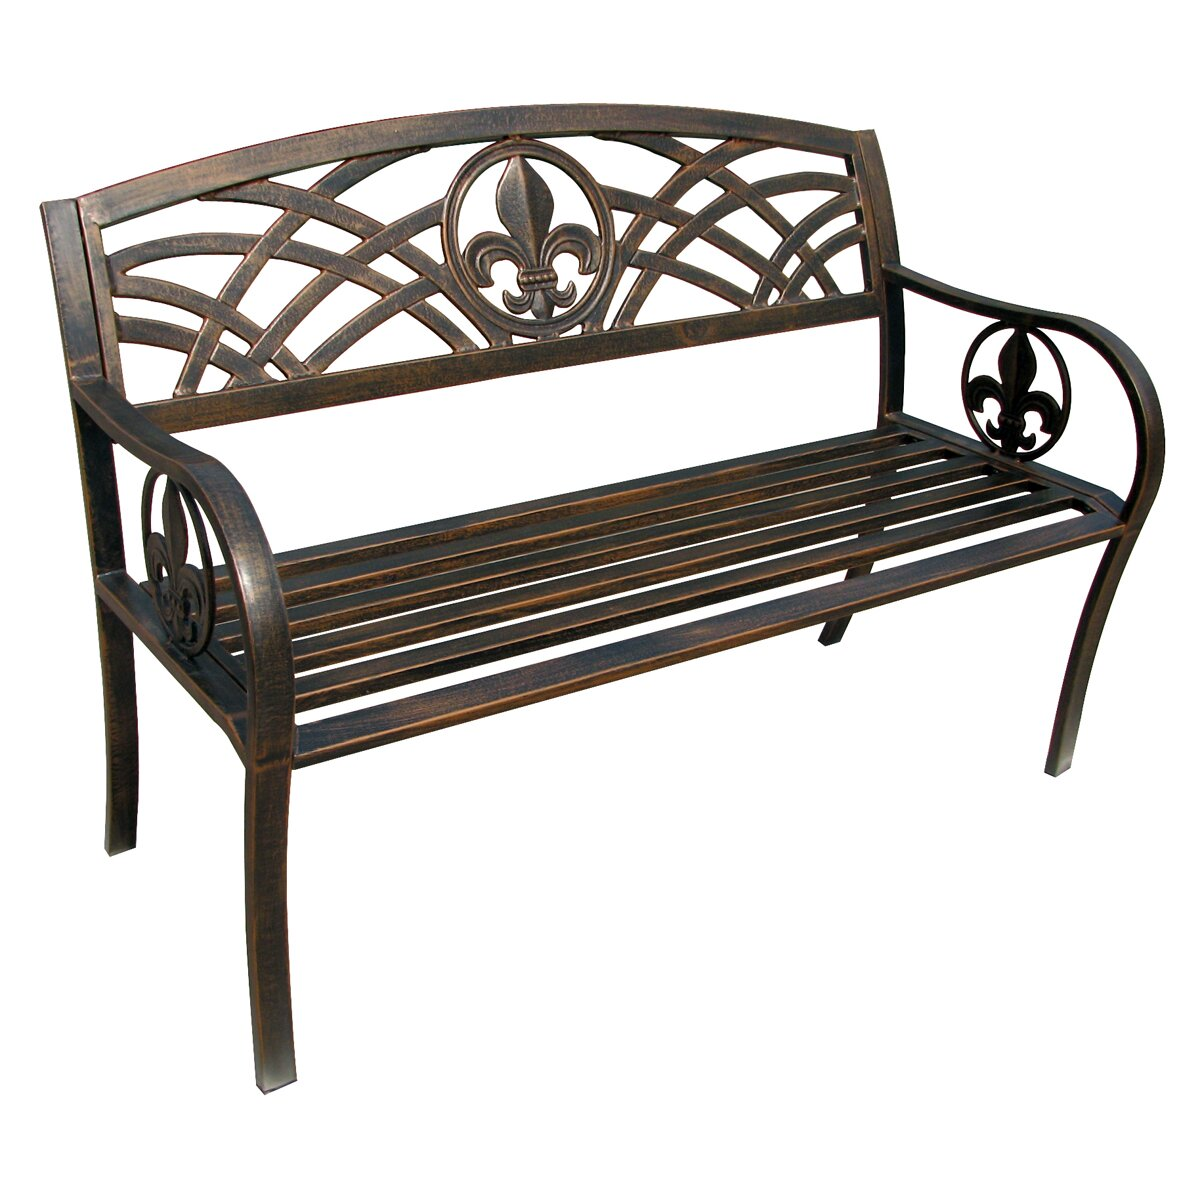 LeighCountry Fleur de Lis Metal Garden Bench Reviews